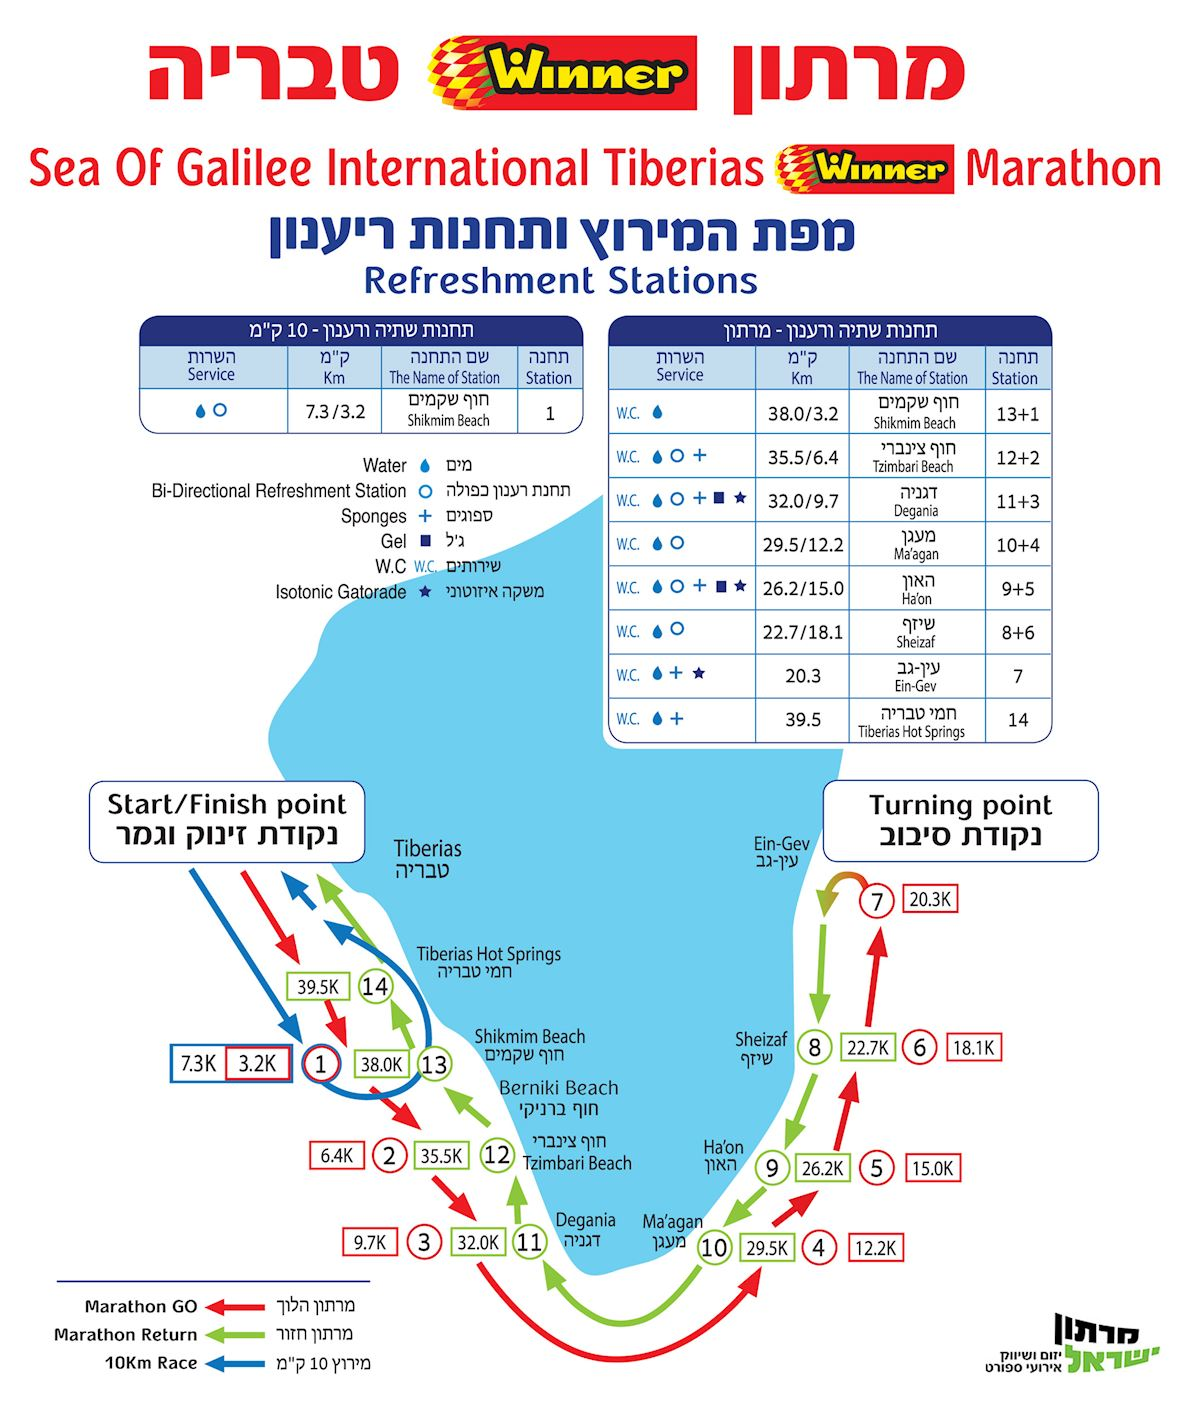 Sea of Galilee Marathon 路线图